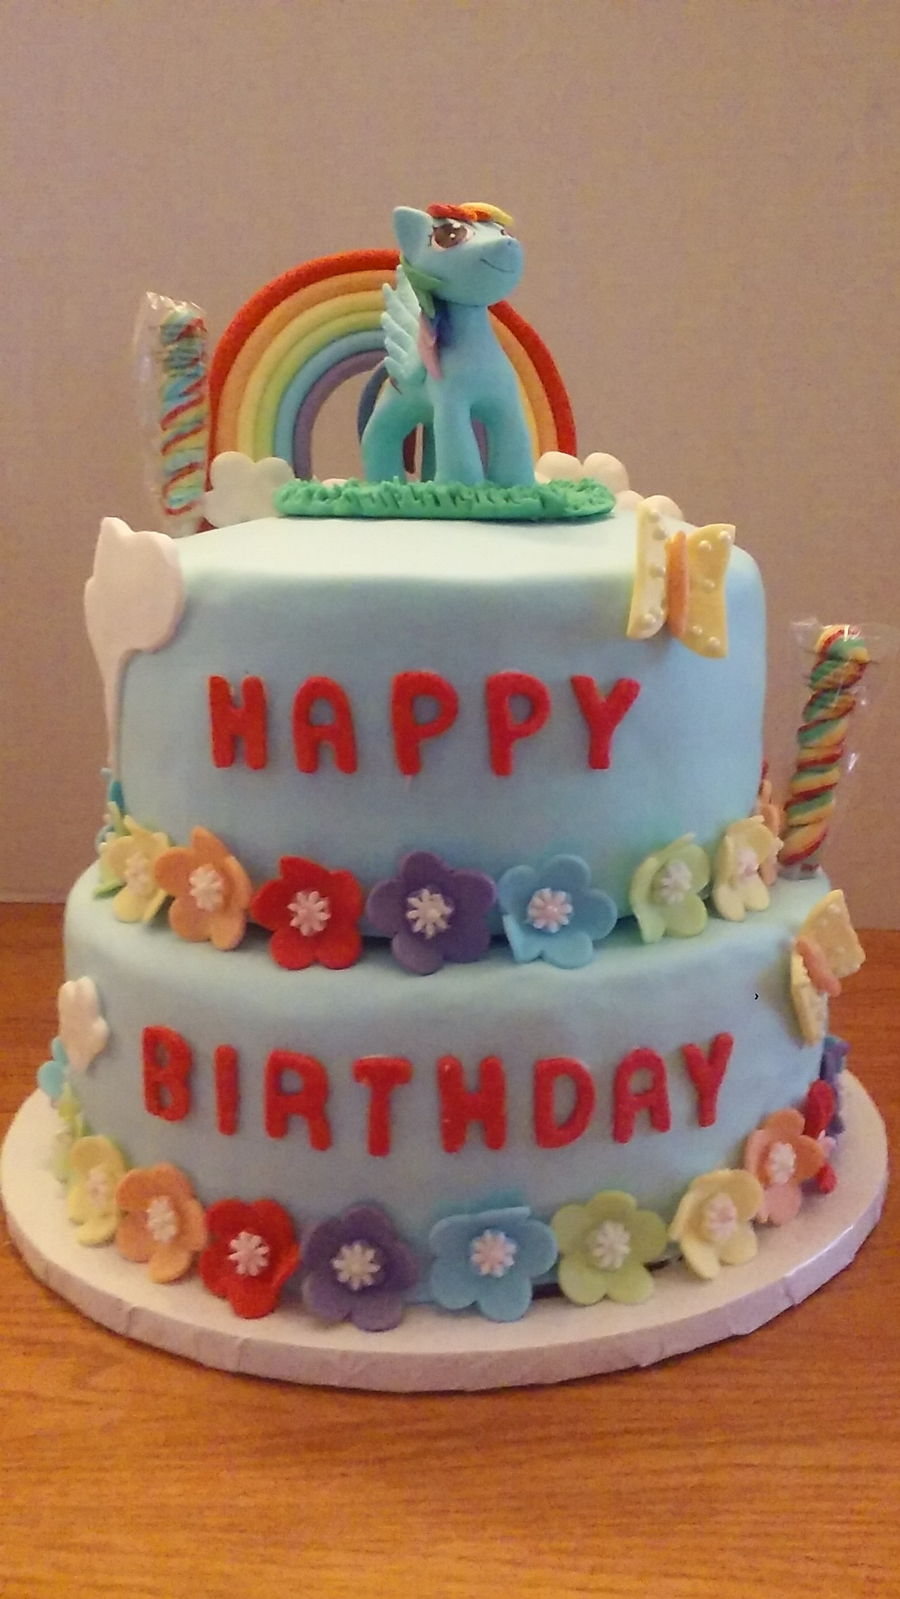 Her Little Pony on Cake Central